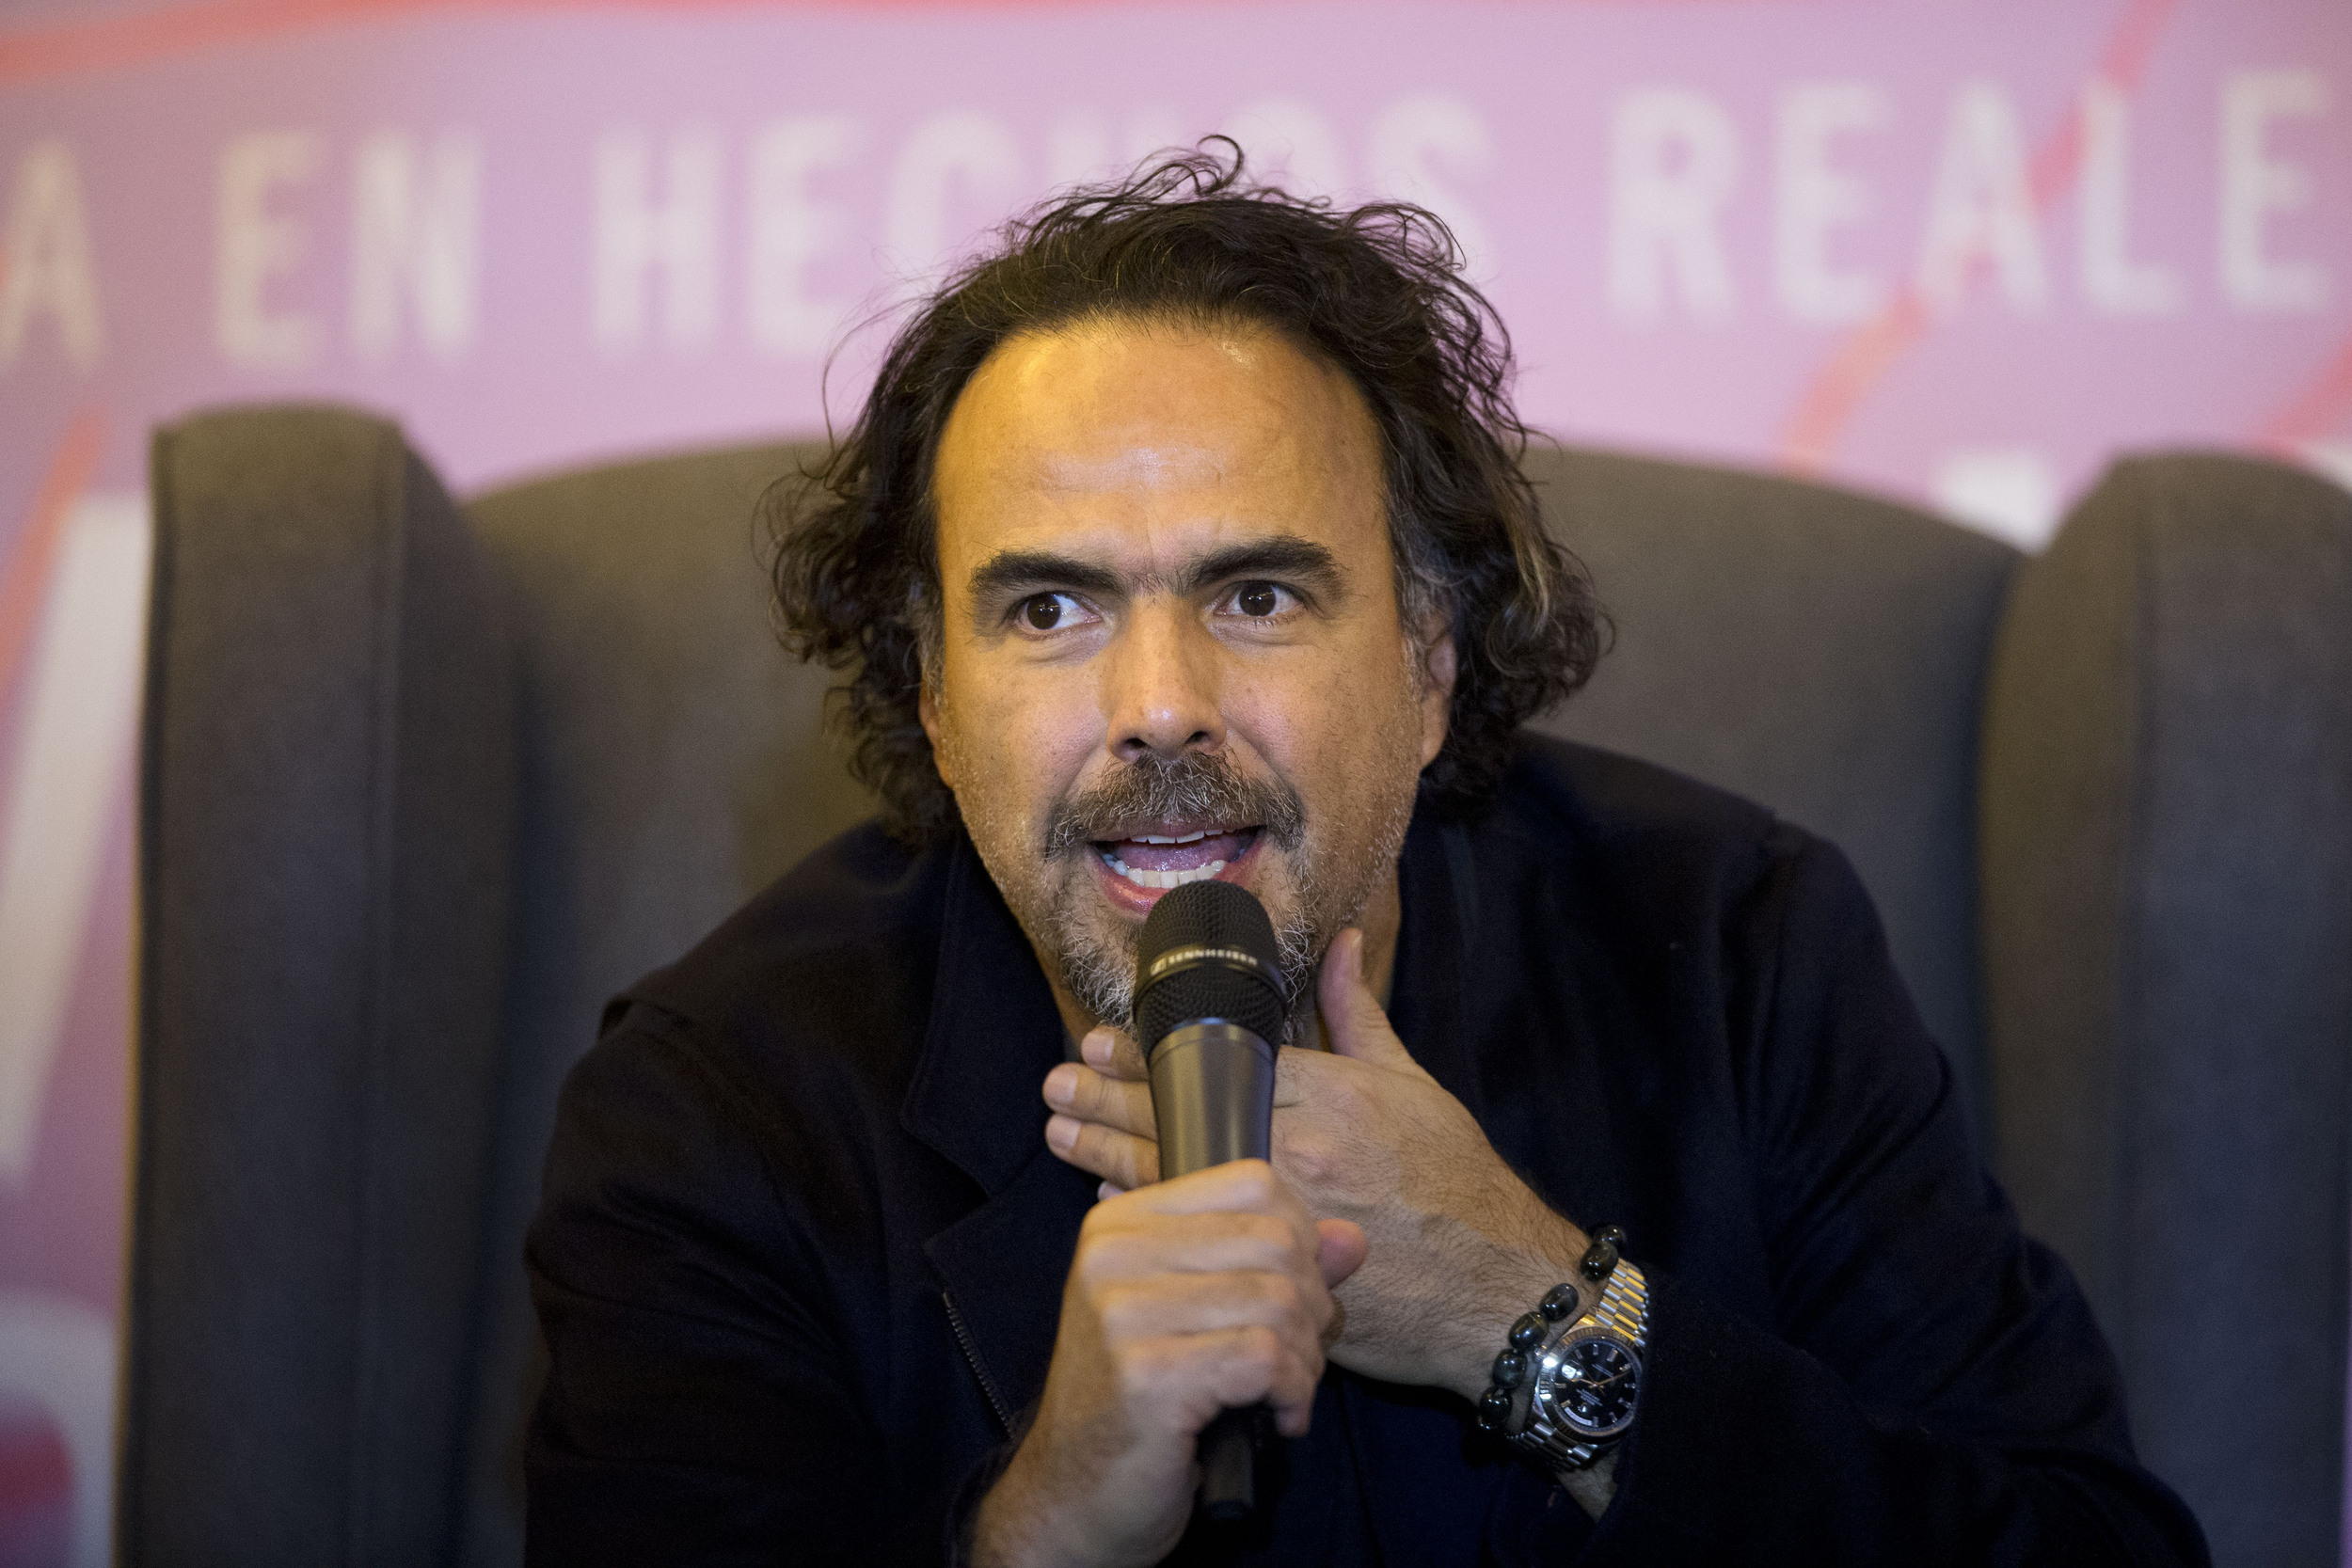 """Mexican director Alejandro Gonzalez Inarritu answers questions during a press event to promote his new film """"The Revenant,"""" in Mexico City, Tuesday, Jan. 26, 2016. (Rebecca Blackwell/AP)"""